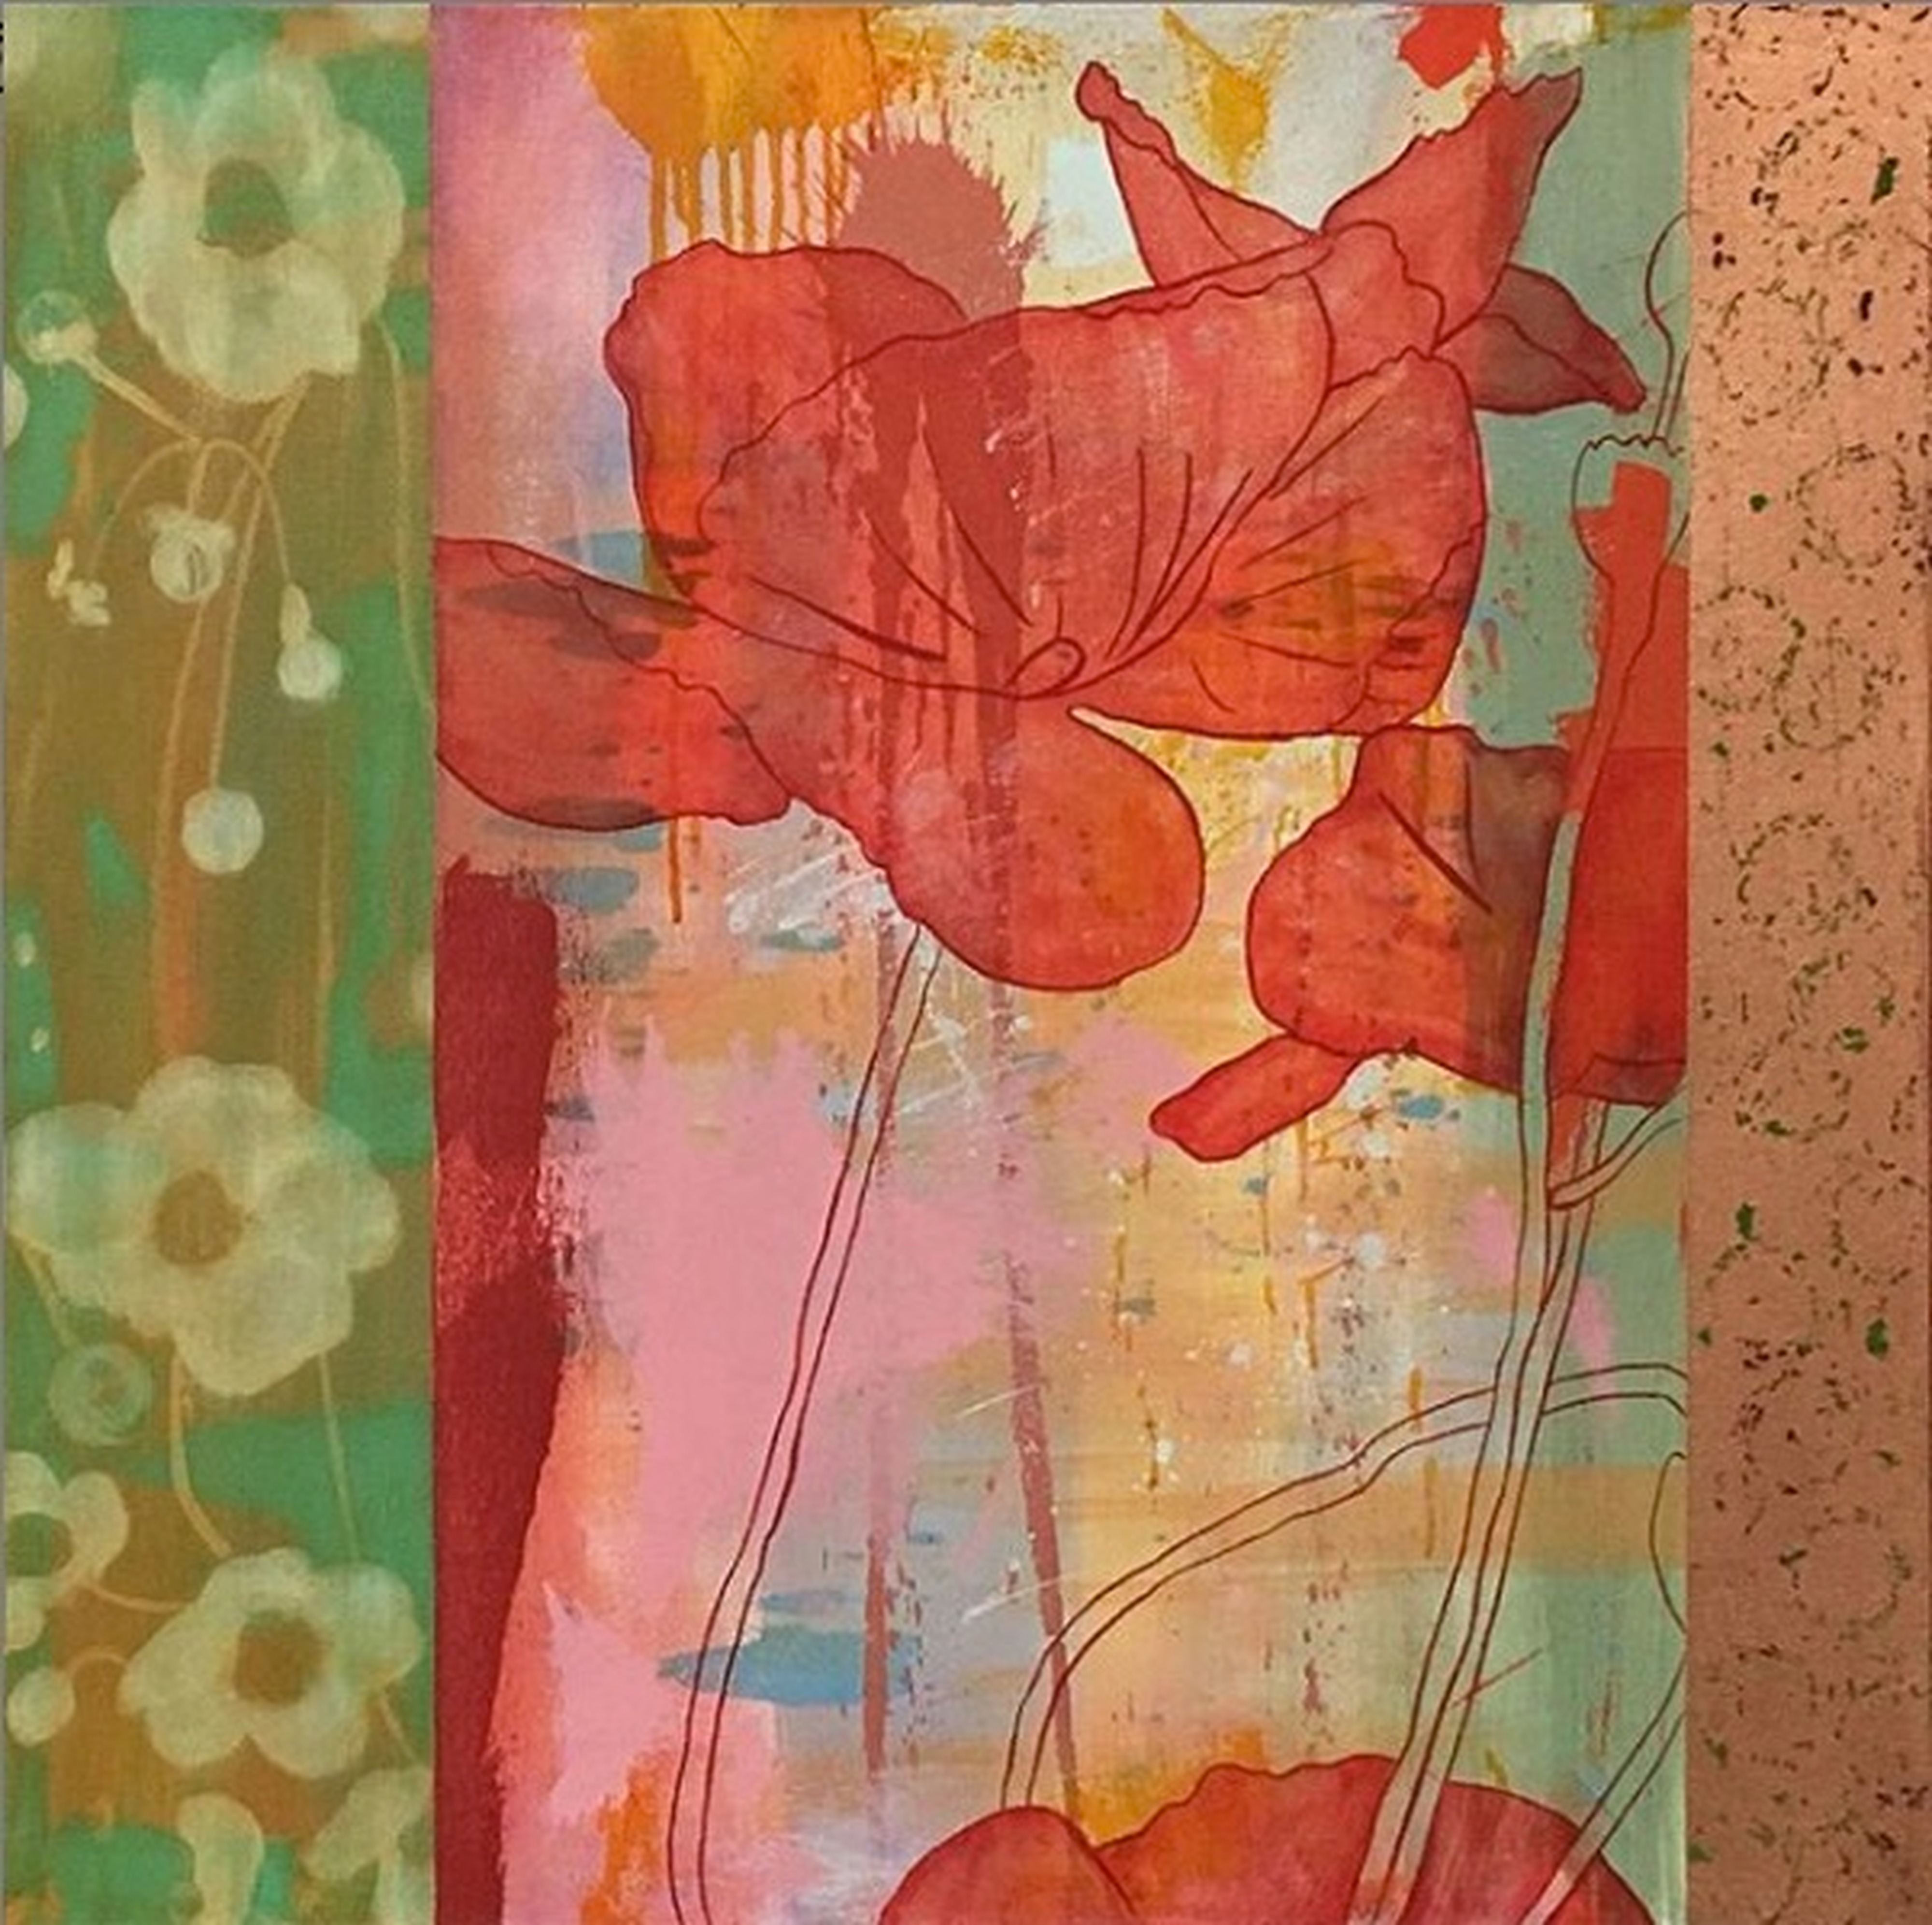 Poppies 1 by Ron Trujillo | ArtworkNetwork.com